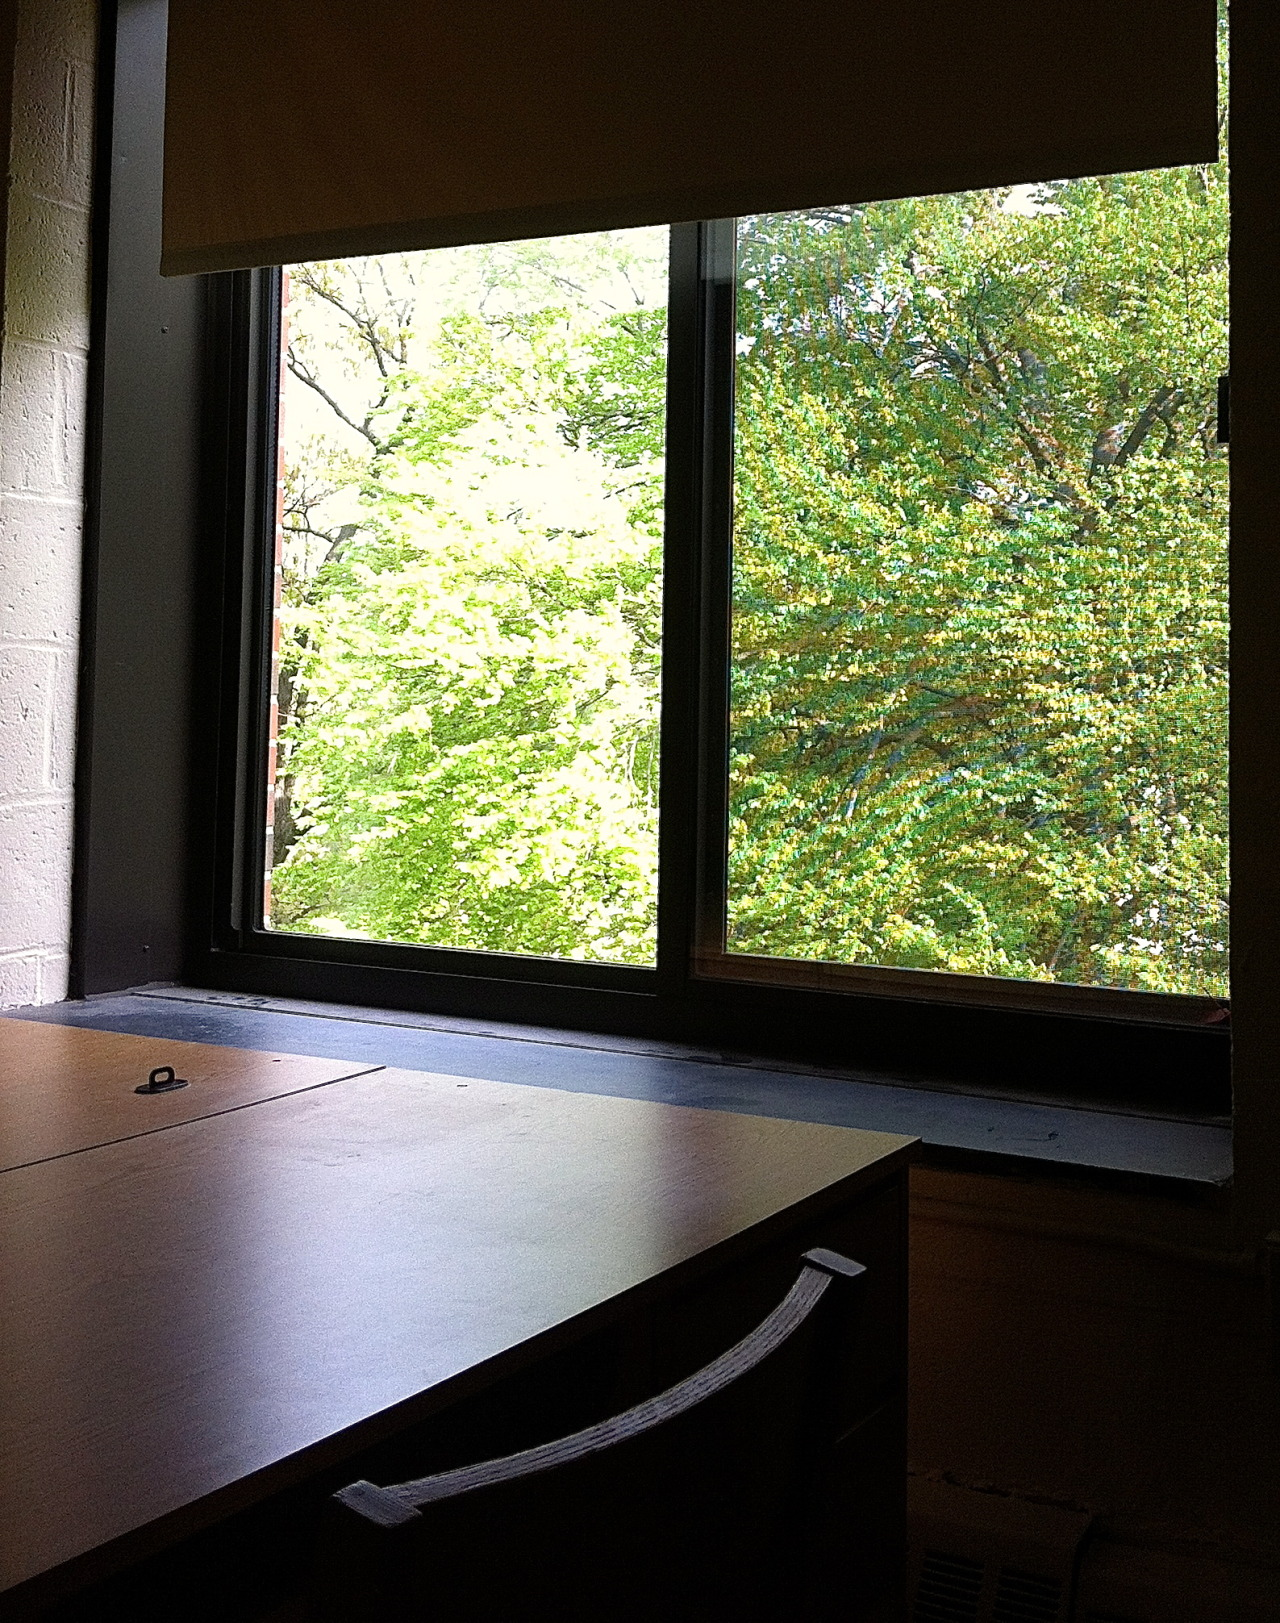 """Wow! You guys have such a perfect window seat,"" an RA said while checking me out of my room.  ""Yep,"" I said, barely paying attention. I was taking the last of my shit off the walls.  ""You ever just sit up here and read?"" She asked, patting the wide windowsill.  I turned around and cocked my head. On the windowsill…I had always thought of it as untouchable, no man's land, something to temporarily put a water bottle on, I don't know. I hadn't ever thought of that, and my roommate didn't either. ""No,"" I breathed, still looking at the windowsill.  She kept talking, I'm not sure what about. I can't believe I never thought of sitting on the windowsill. That's such a perfect place to read.  When she left a few minutes later, I climbed onto the windowsill, knees folded to my chest. I sat and stared out the window for 5 minutes until my cab came.  I think that's the only thing I regret about my freshman year."